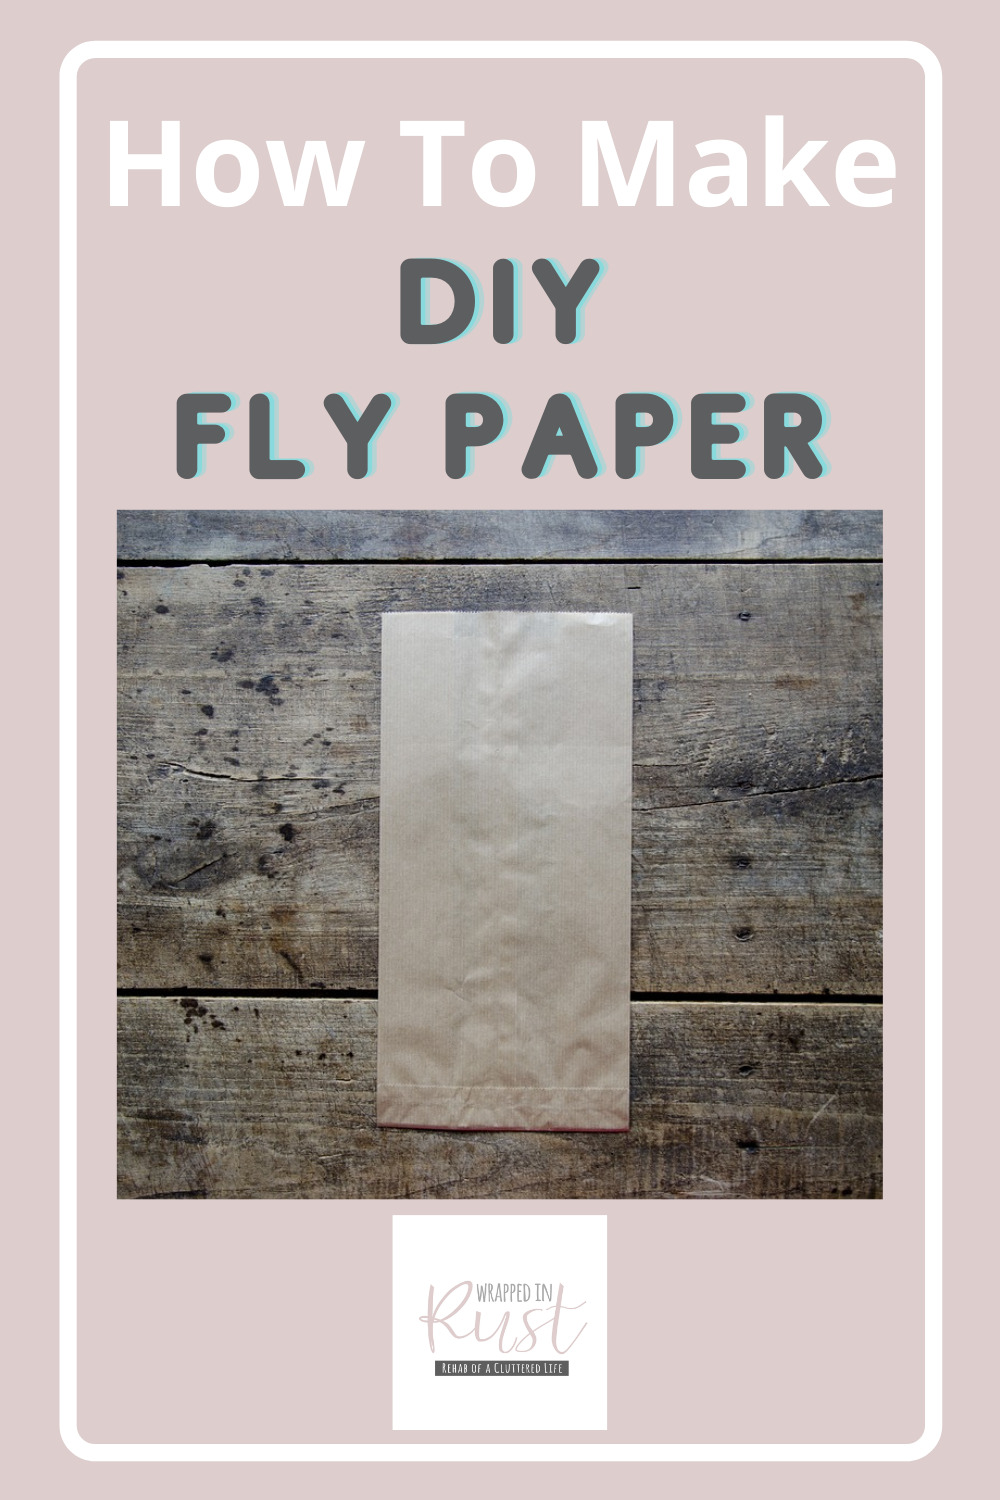 Wrappedinrust.com has creative solutions for tricky cleaning projects. Keep your jewelry spotless without overspending on store bought solution. Learn how to make fly paper all on your own!